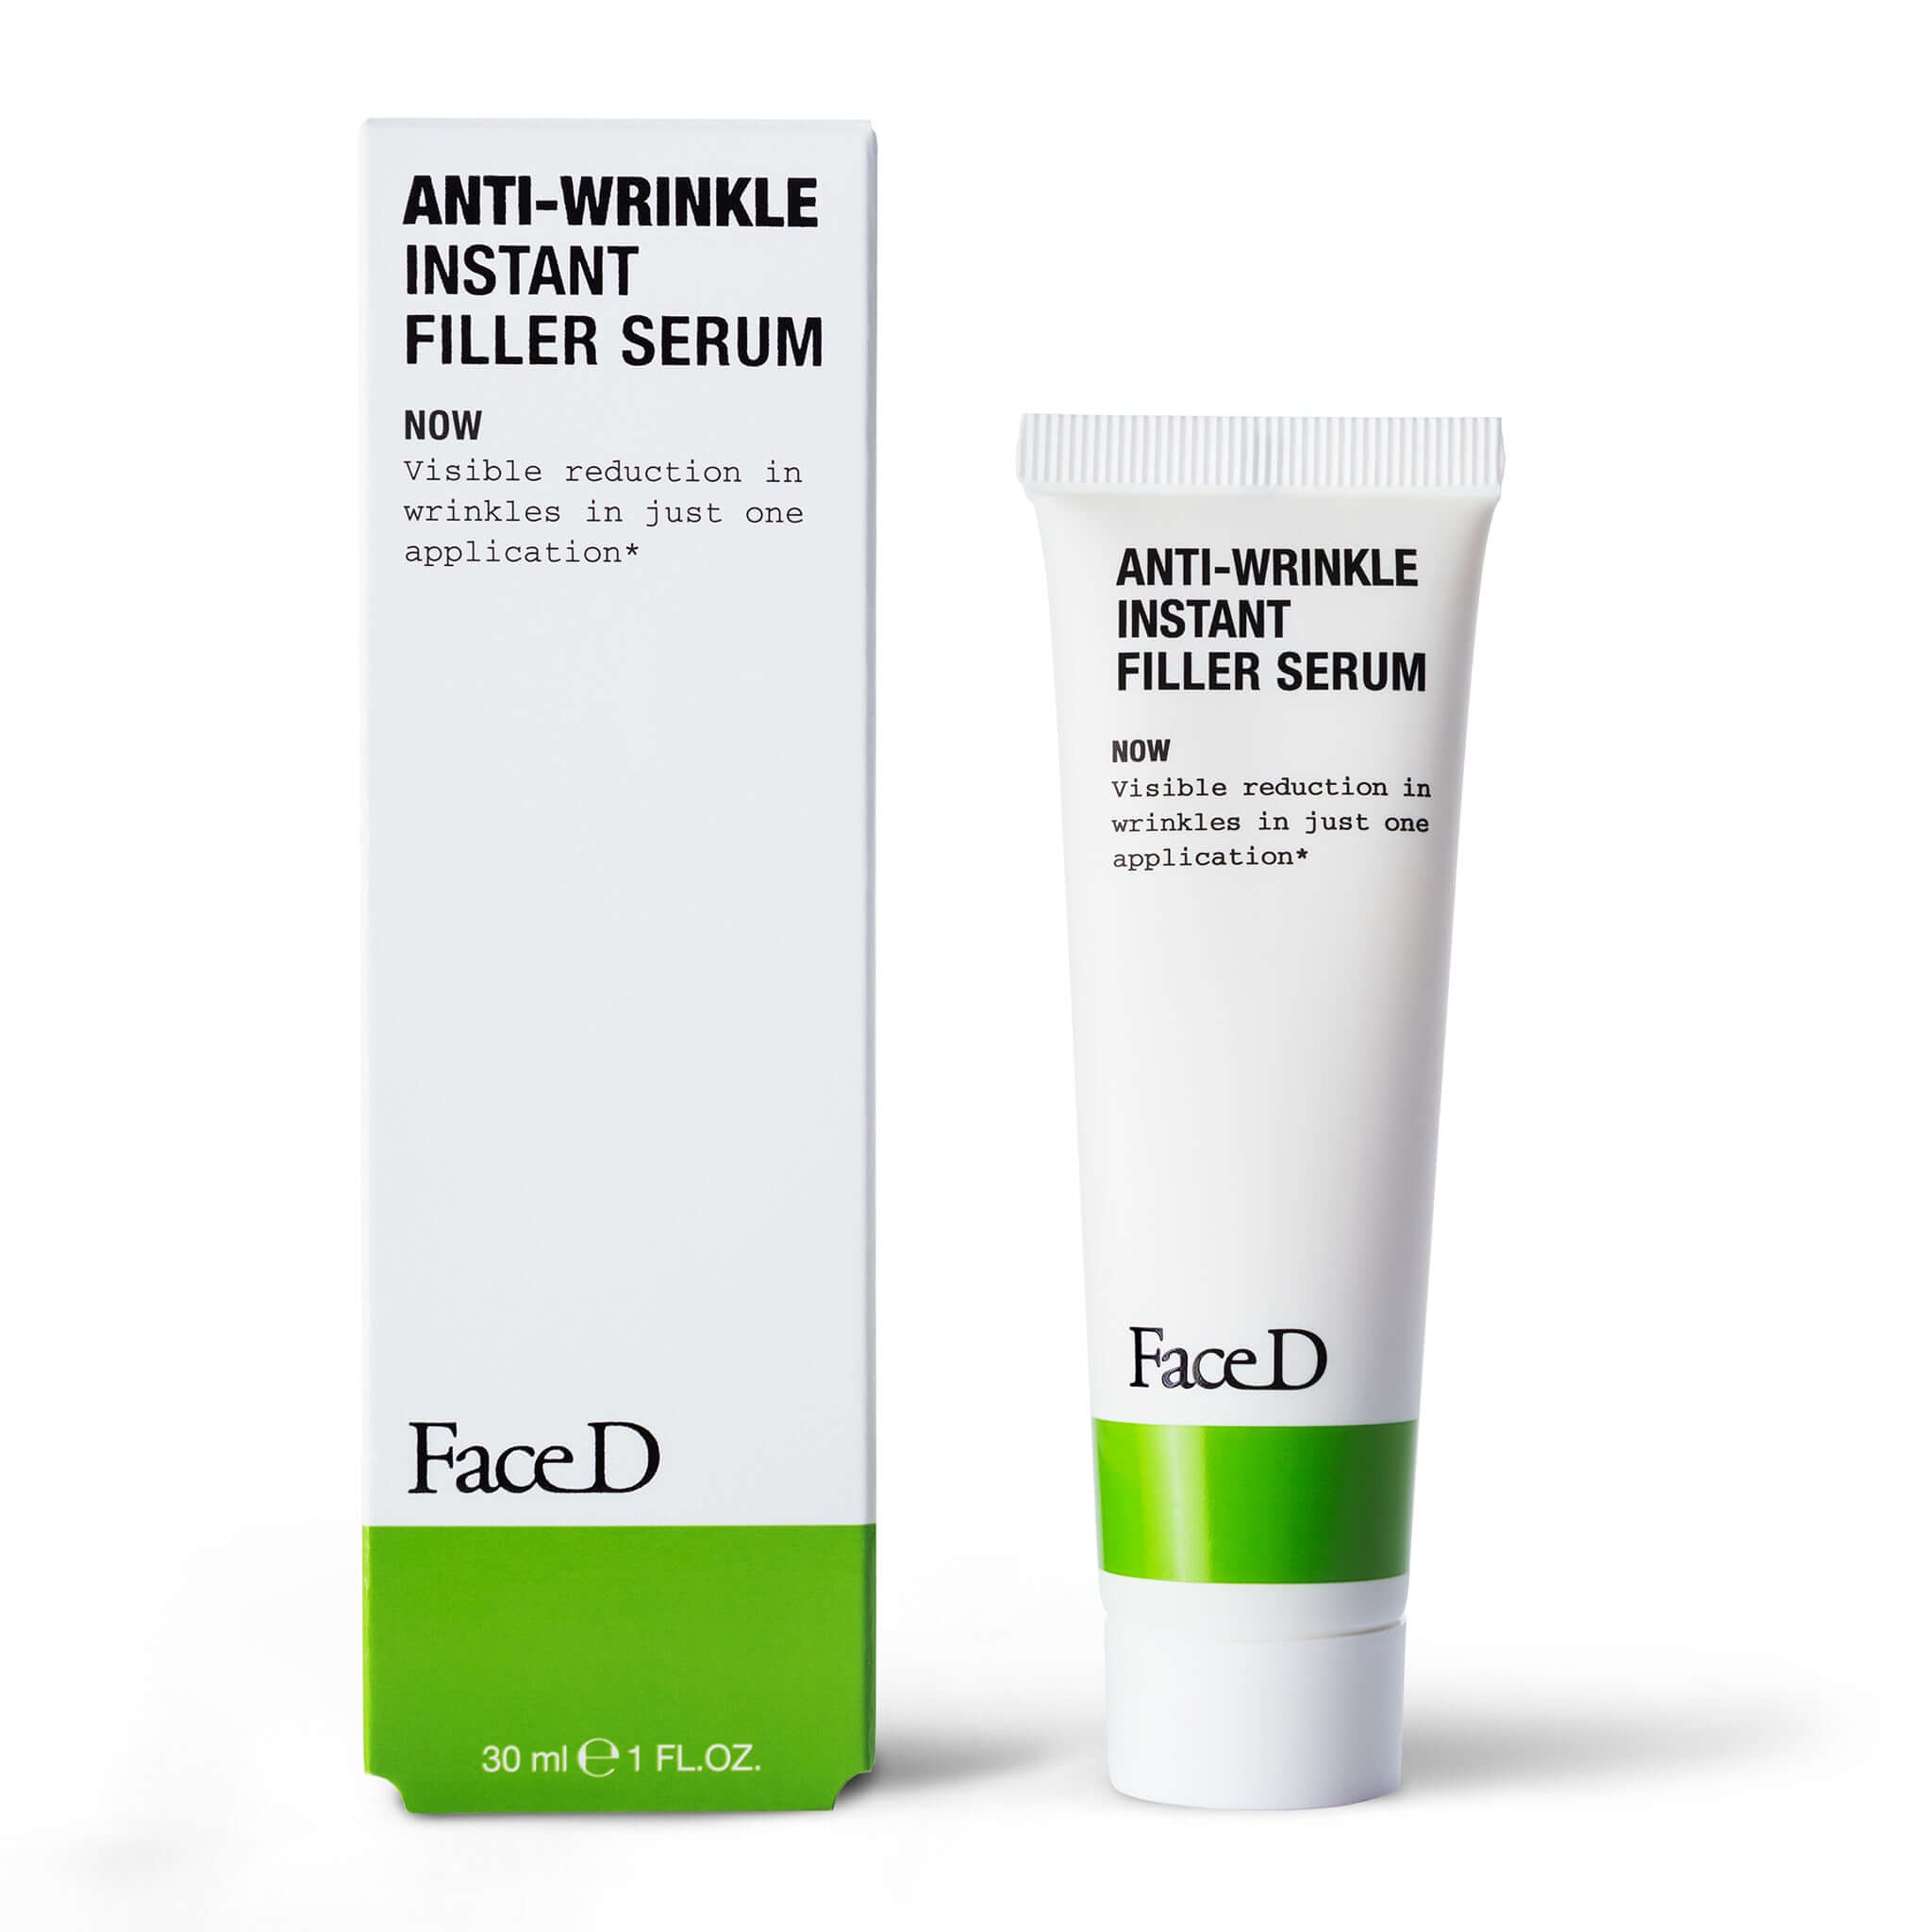 Anti-wrinkle-Instant-Filler Serum-FaceD-Anti-Ageing-Anti-Wrinkle || Siero-Filler-Antirughe-istantaneo-FaceD-antietà-antirughe